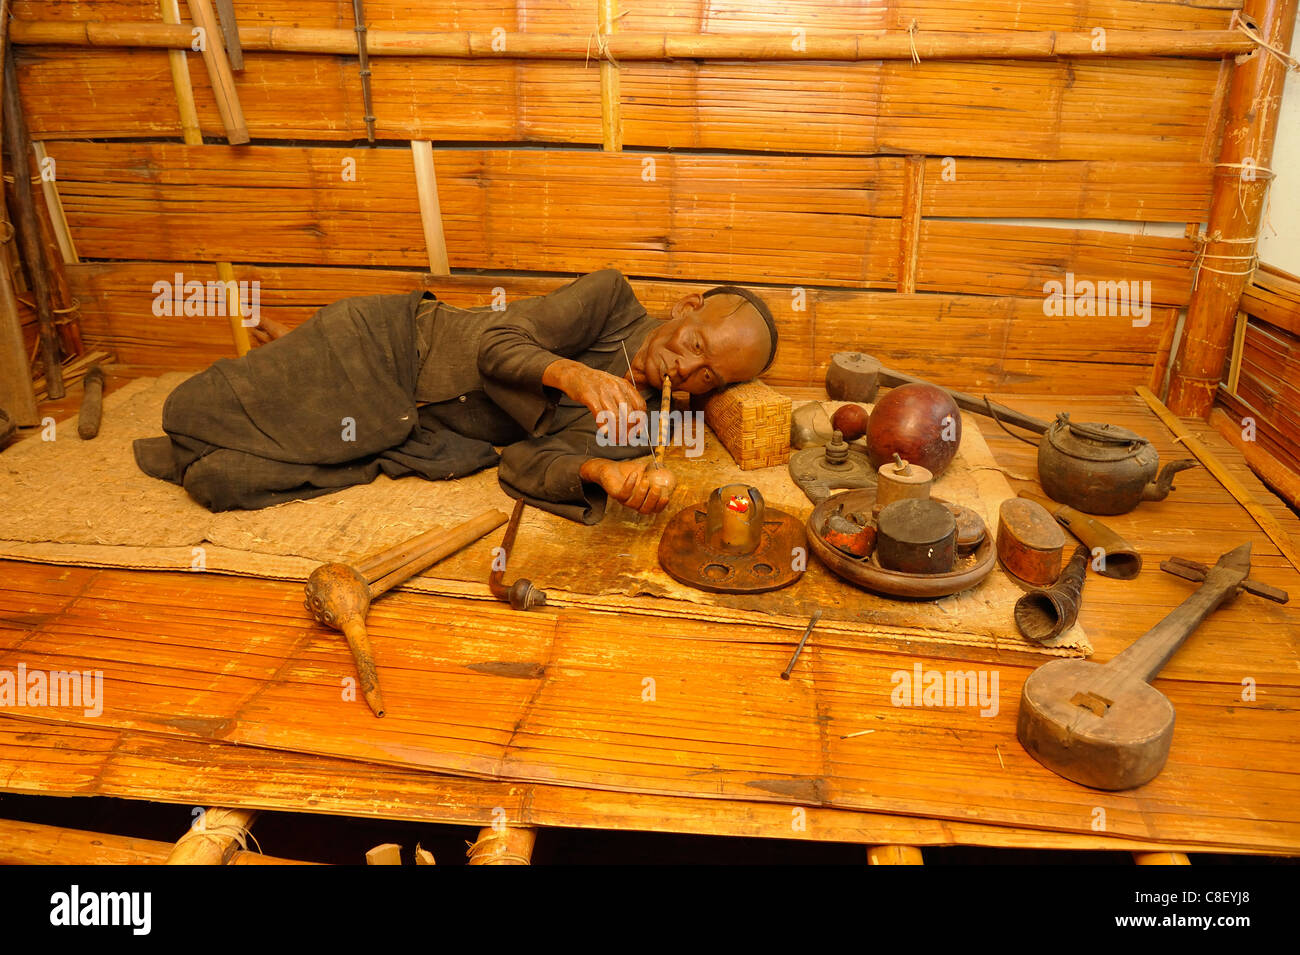 Opium Pipes, House of Opium, Golden Triangle, Thailand, Asia, museum, man, drugs - Stock Image